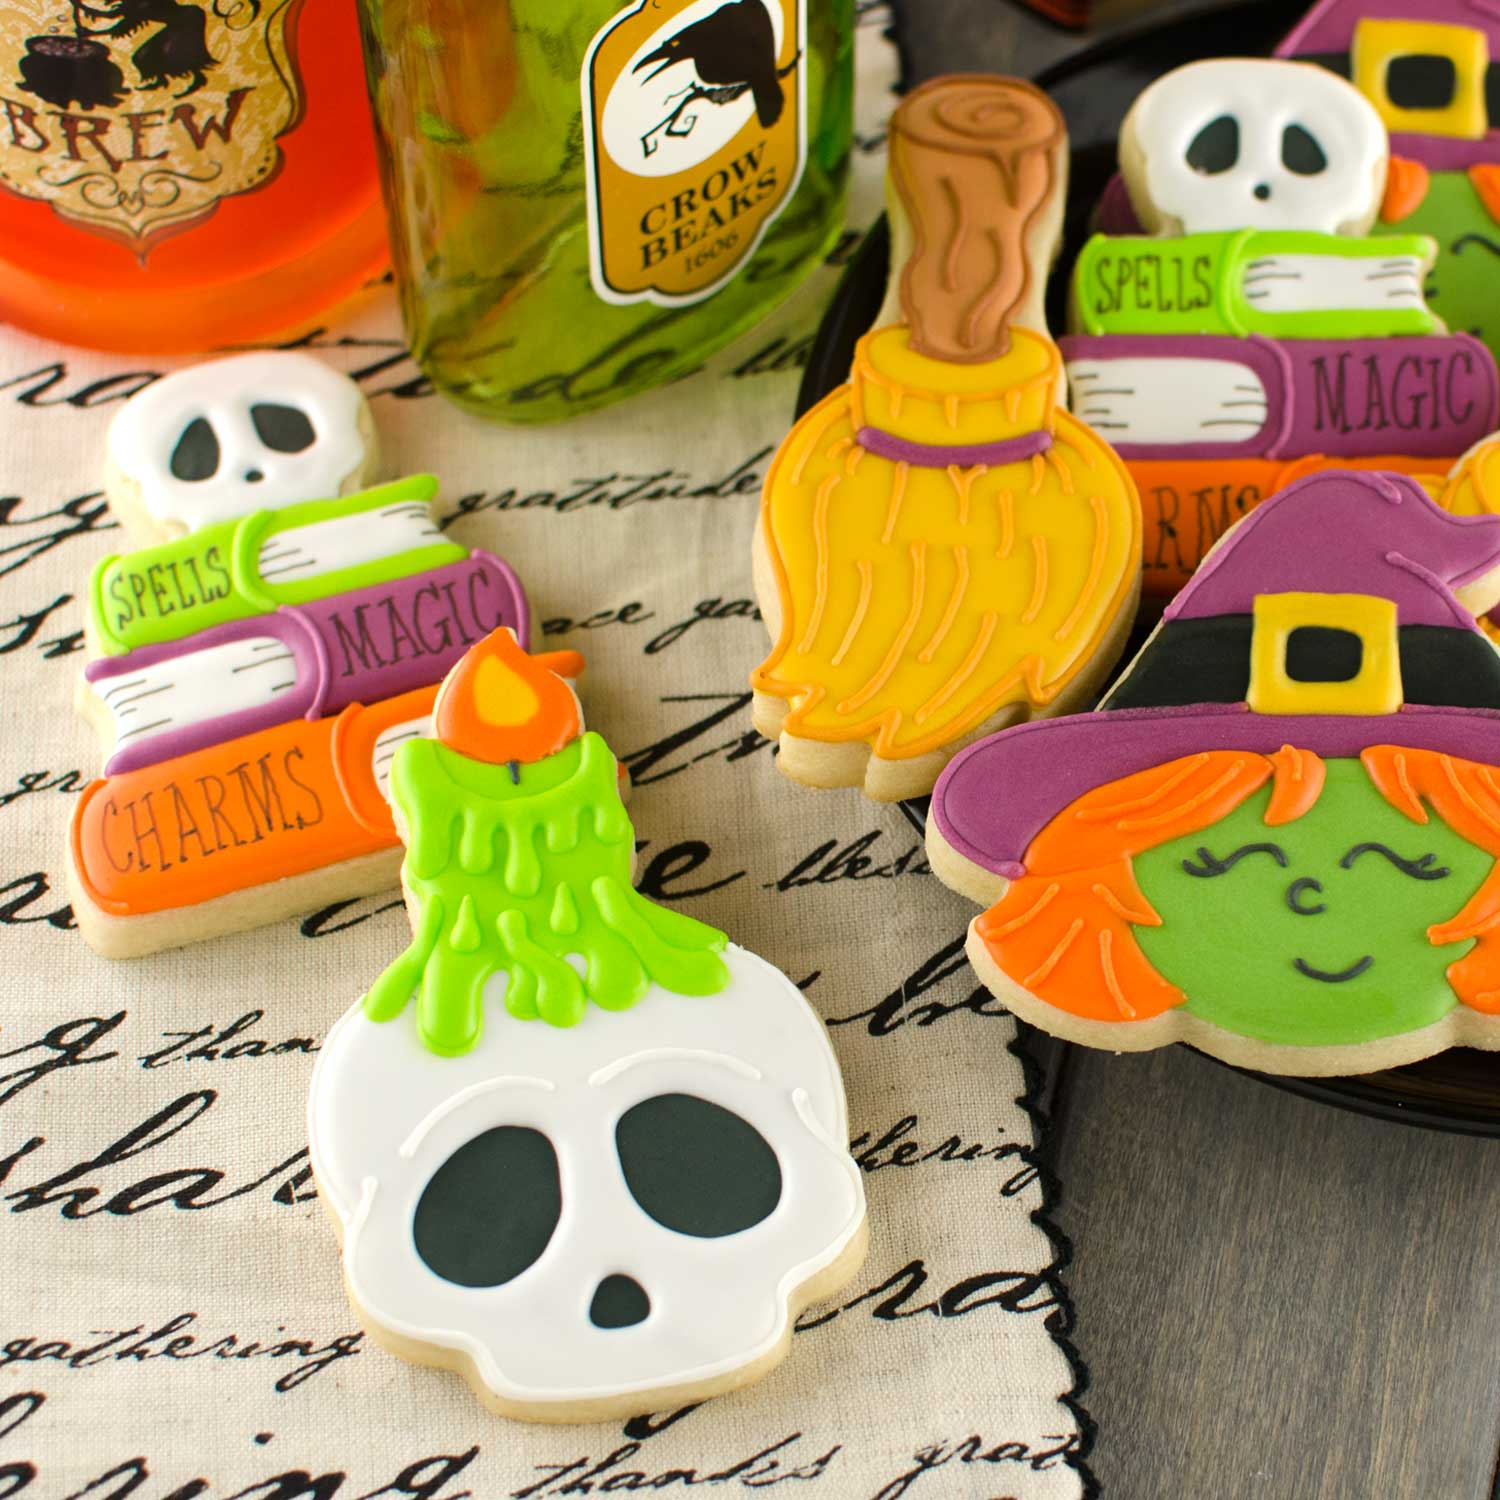 How to Make Skull Candle Cookies